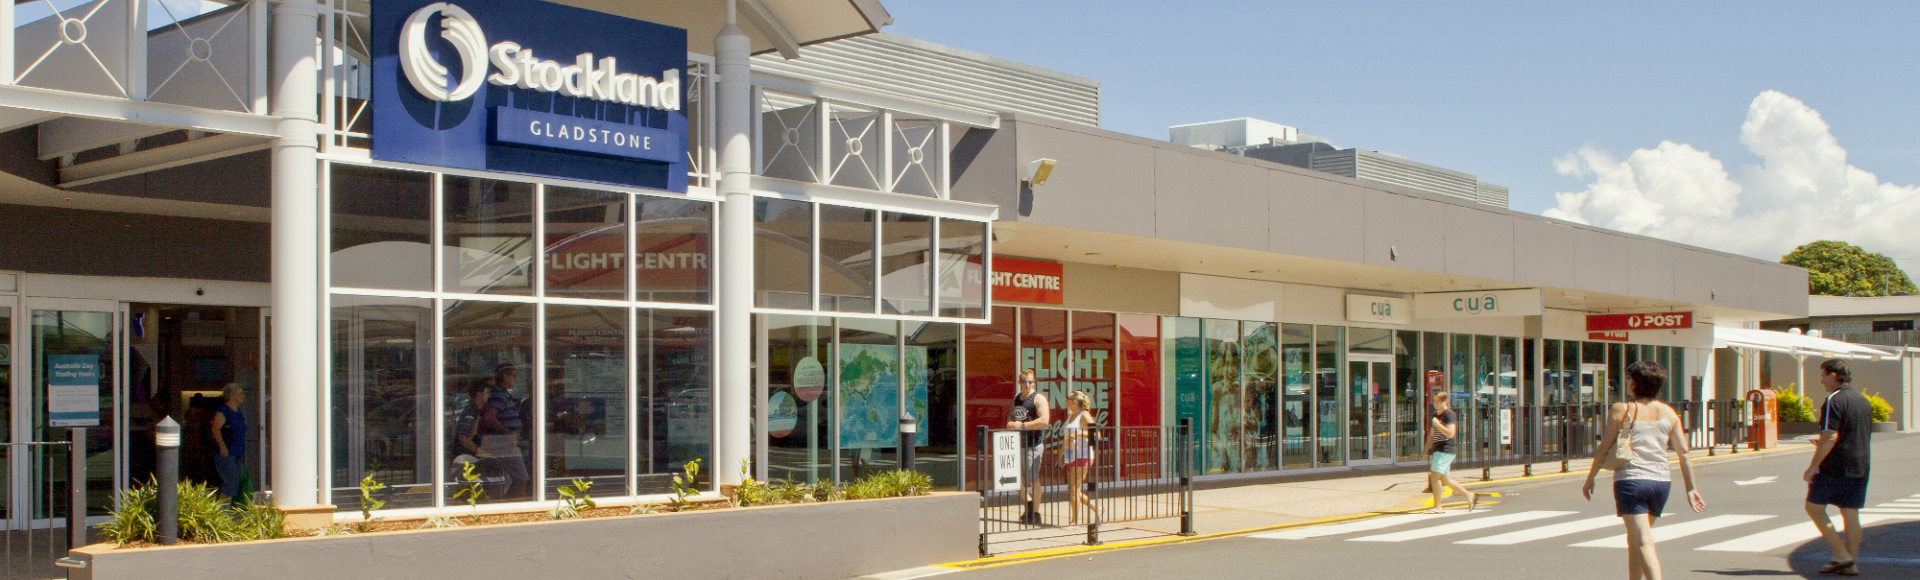 Gladstone Shopping Centre Main Entrance 1920x580px